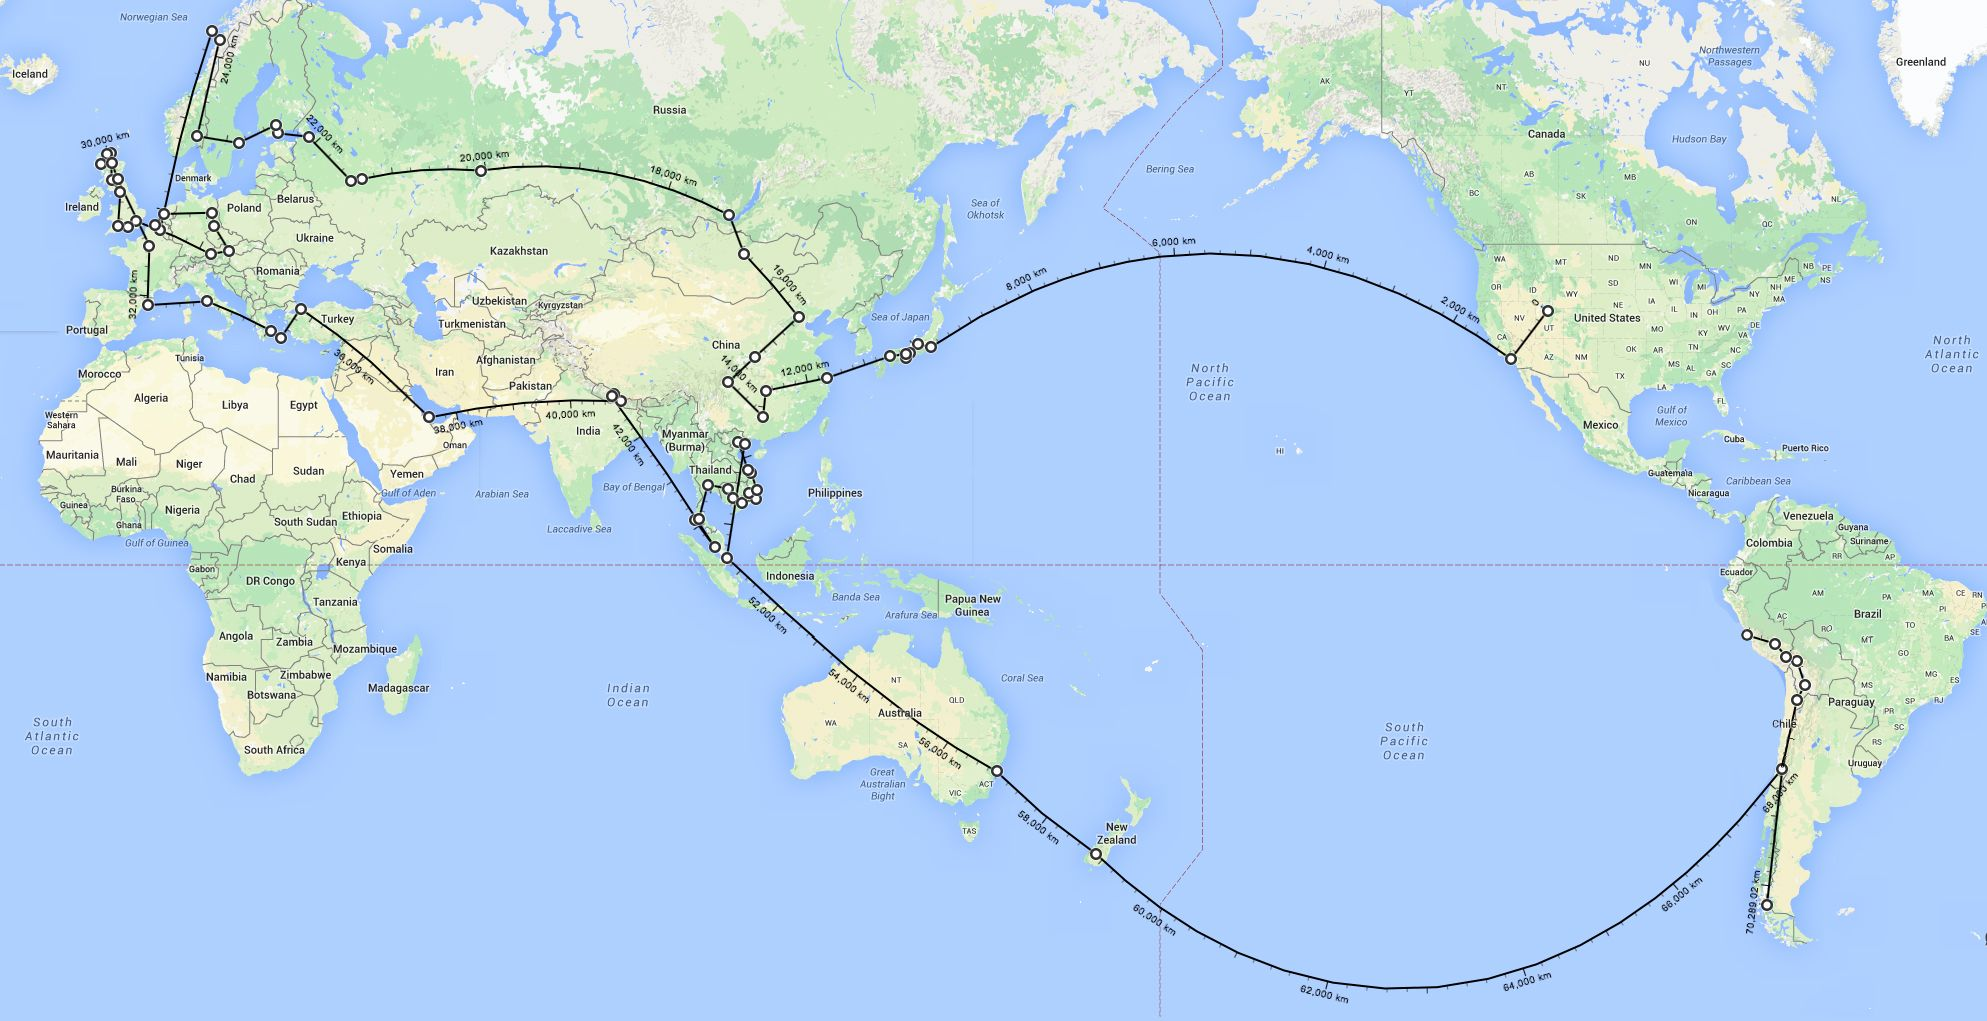 With a one way ticket in hand we left home in the united states and one way ticket in hand we left home in the united states and flew to tokyo and beyond in may 2014 our year long global journey took us to 26 countries gumiabroncs Choice Image